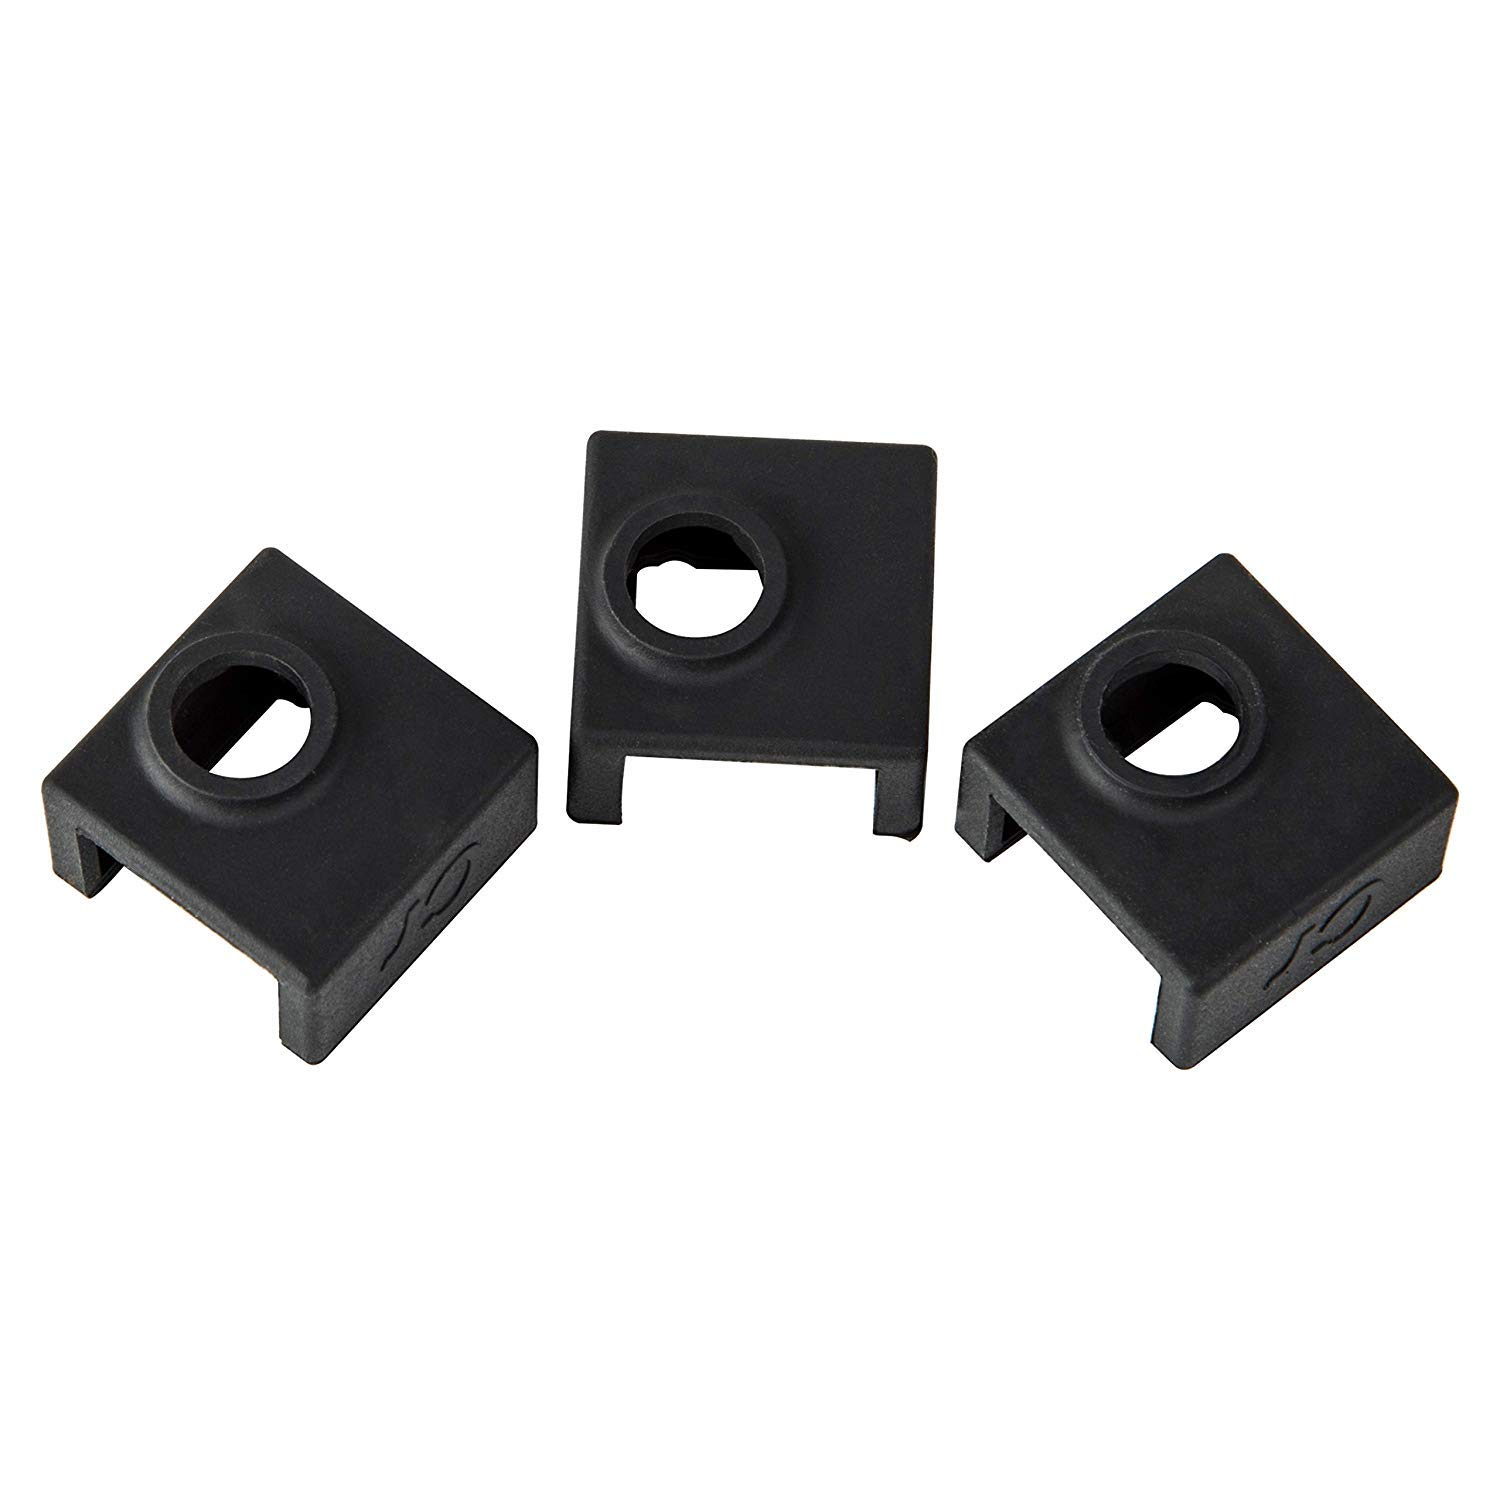 Ender 3 Pro Ender 5 CR-10,10S,3 Extruder Nozzle 0.4mm Print Head for Mk8 Makerbot Creality 3D Printer Heater Block Silicone Cover MK7//MK8//MK9 Hotend for Creality Ender 3